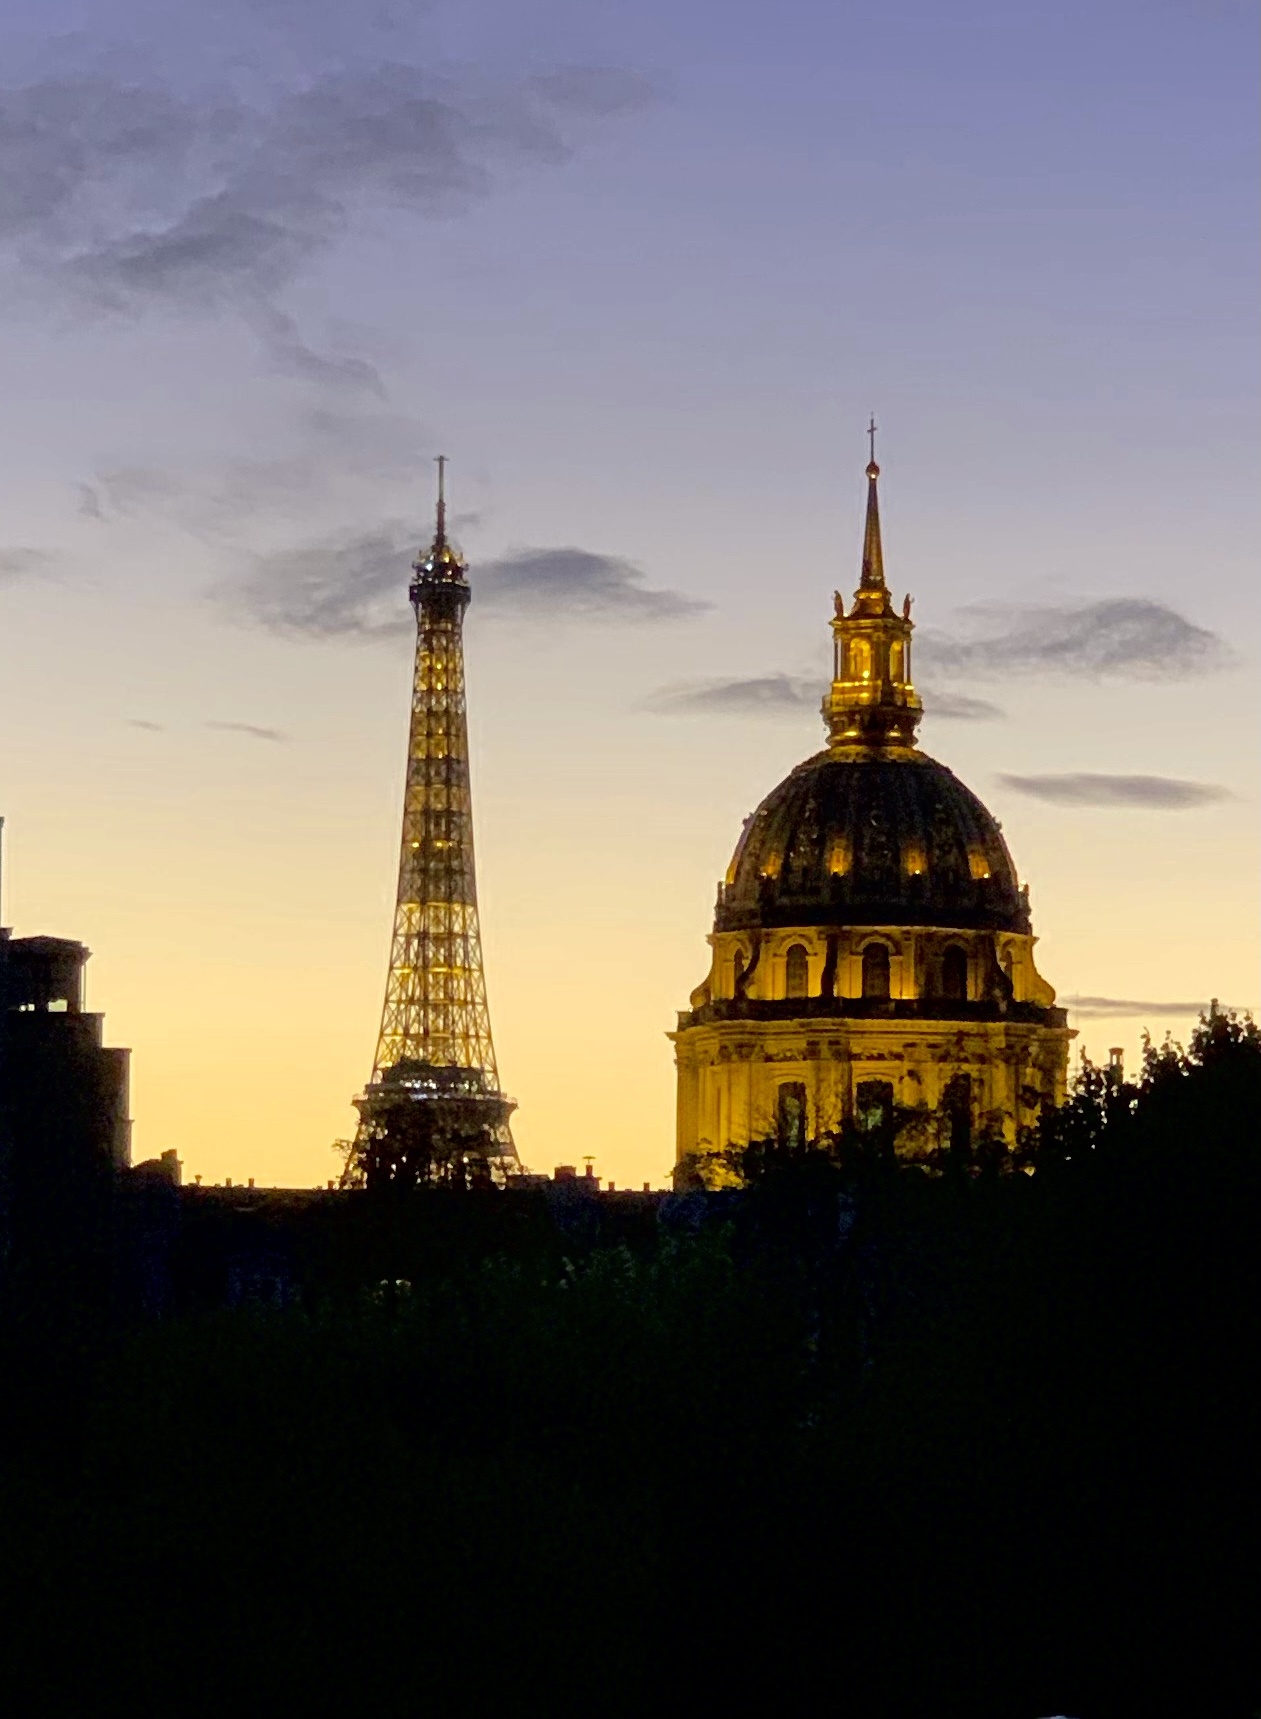 Tour Eiffel and Les Invalides during sunset